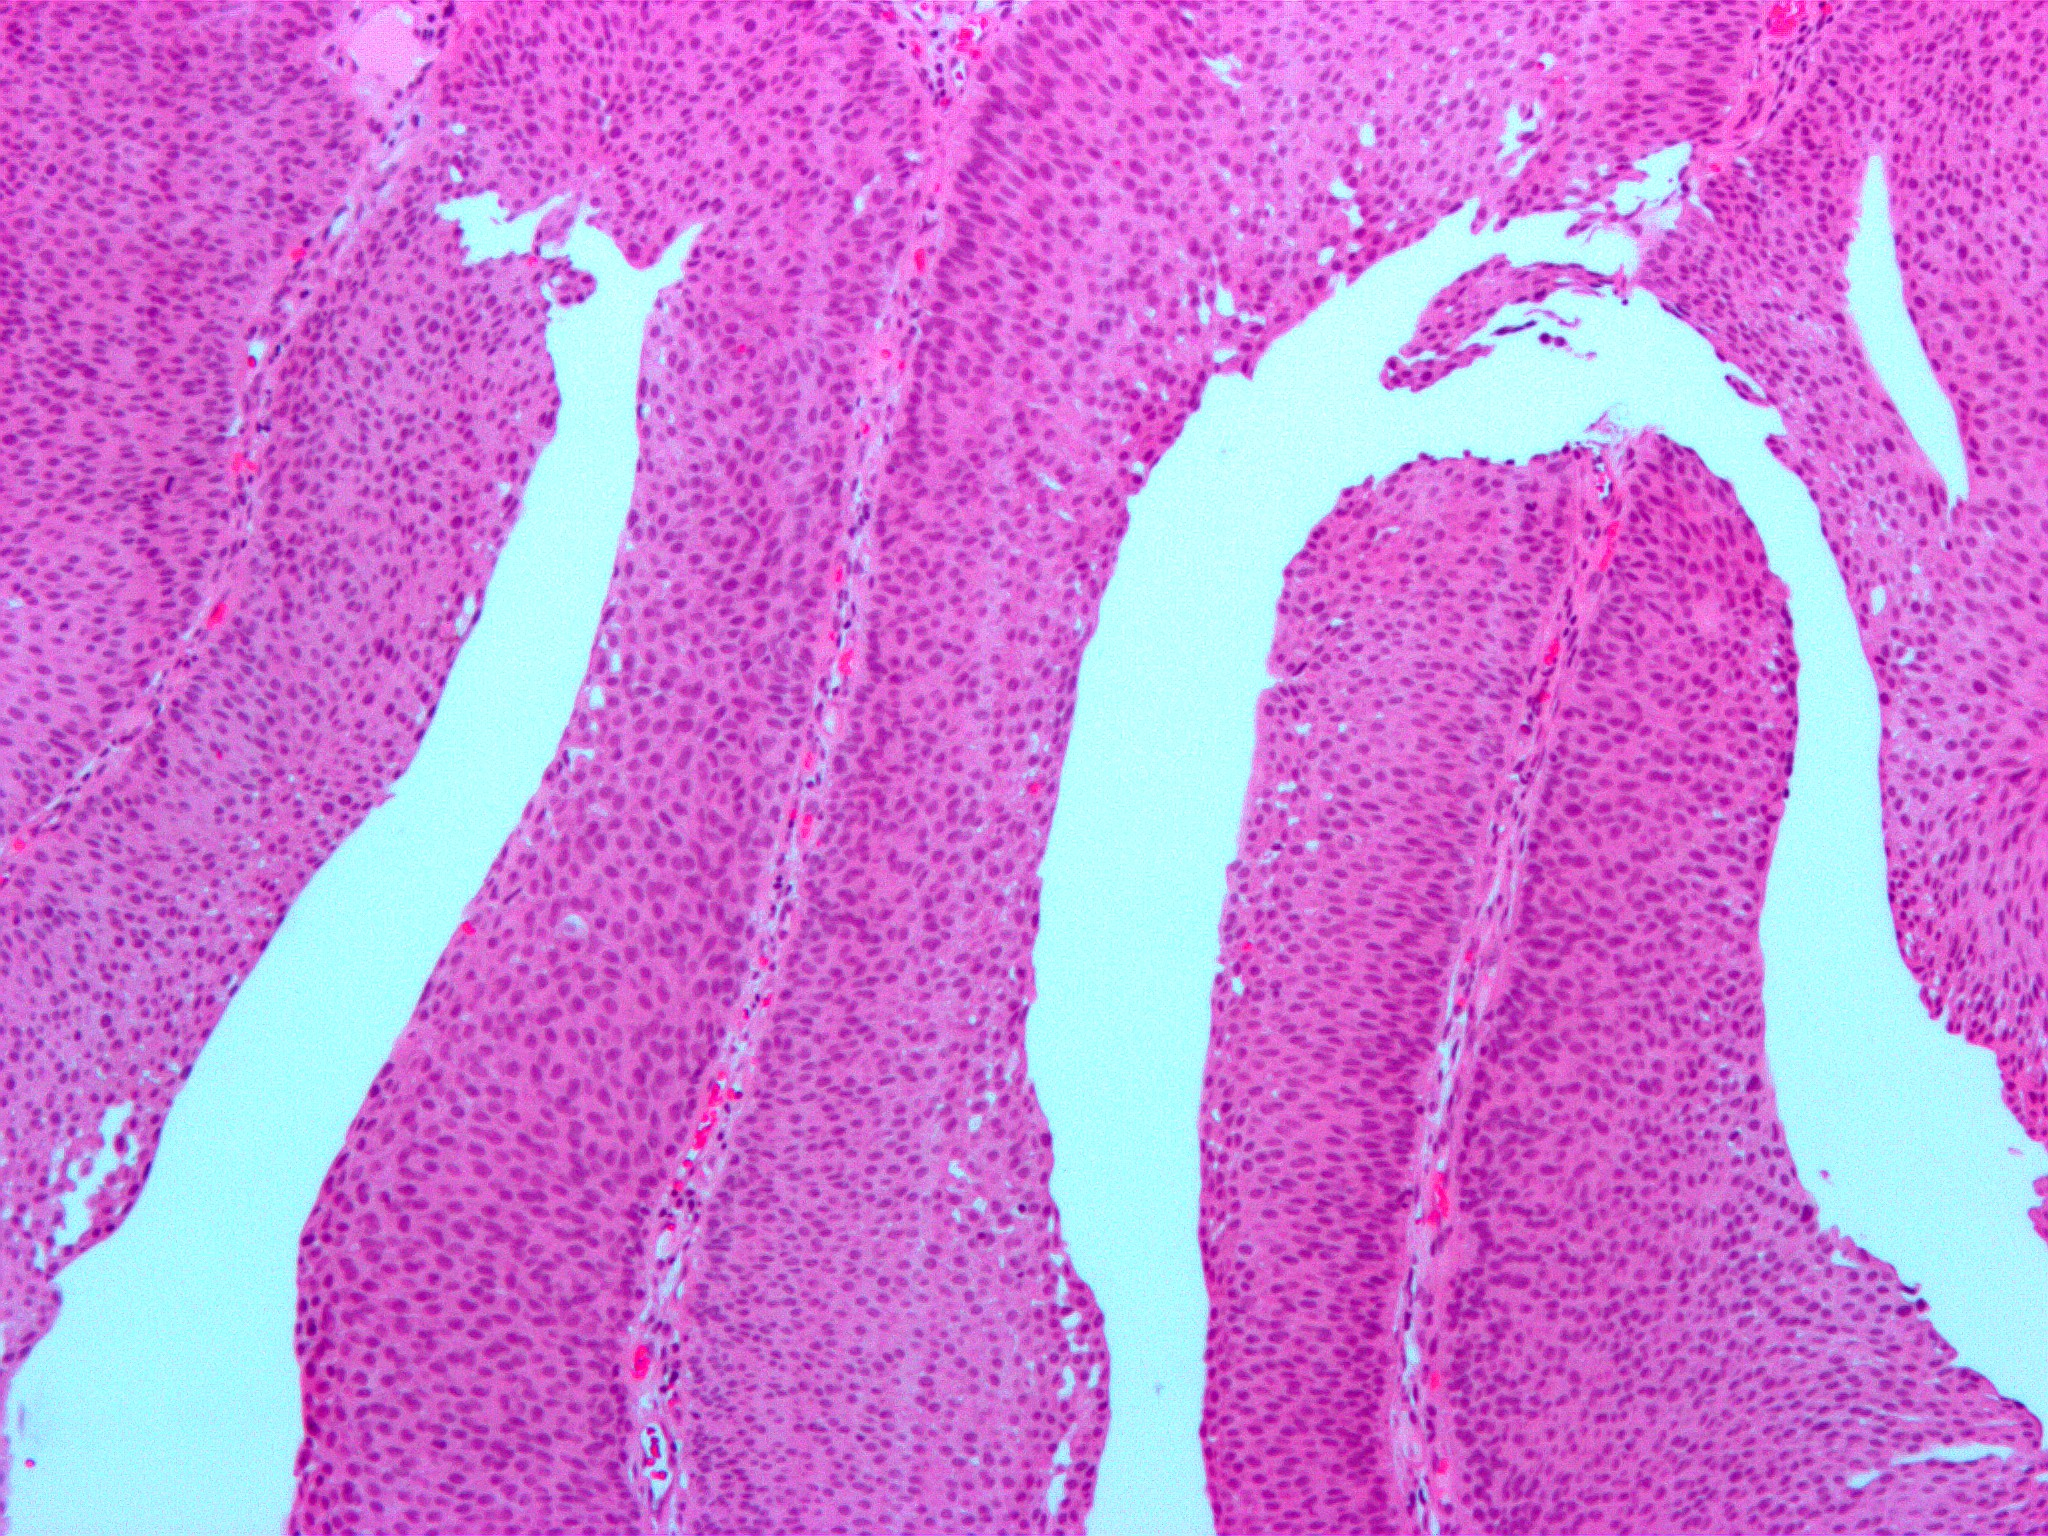 papillary urothelial cell proliferation